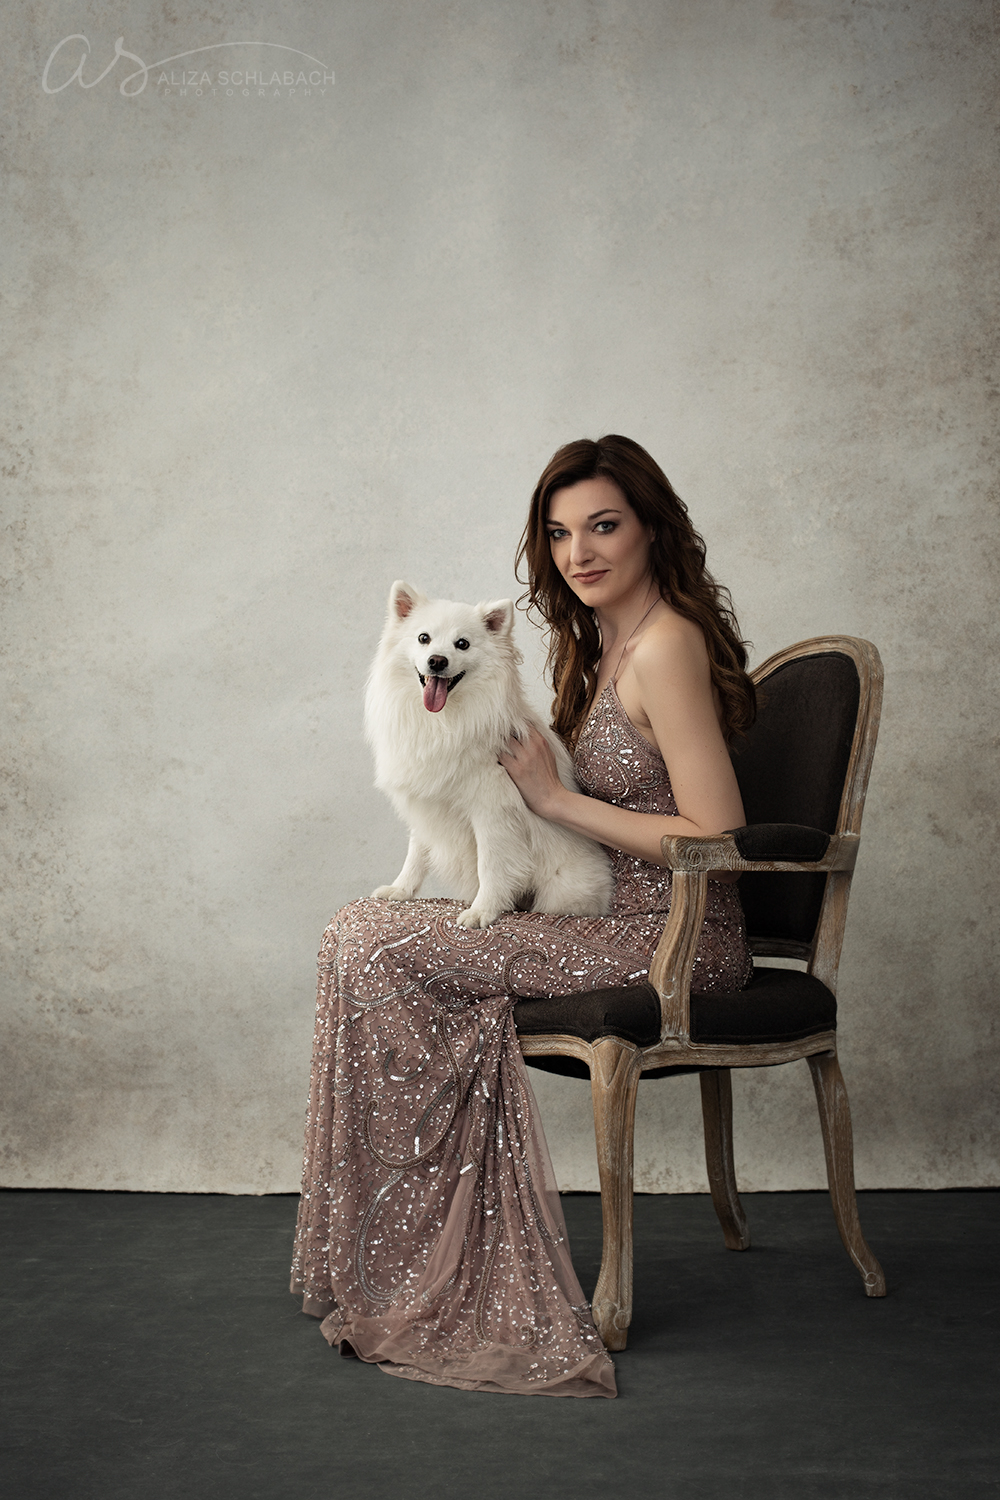 Pet photography - portrait of a glamorous woman in a sequin dress with her Miniature American Eskimo dog